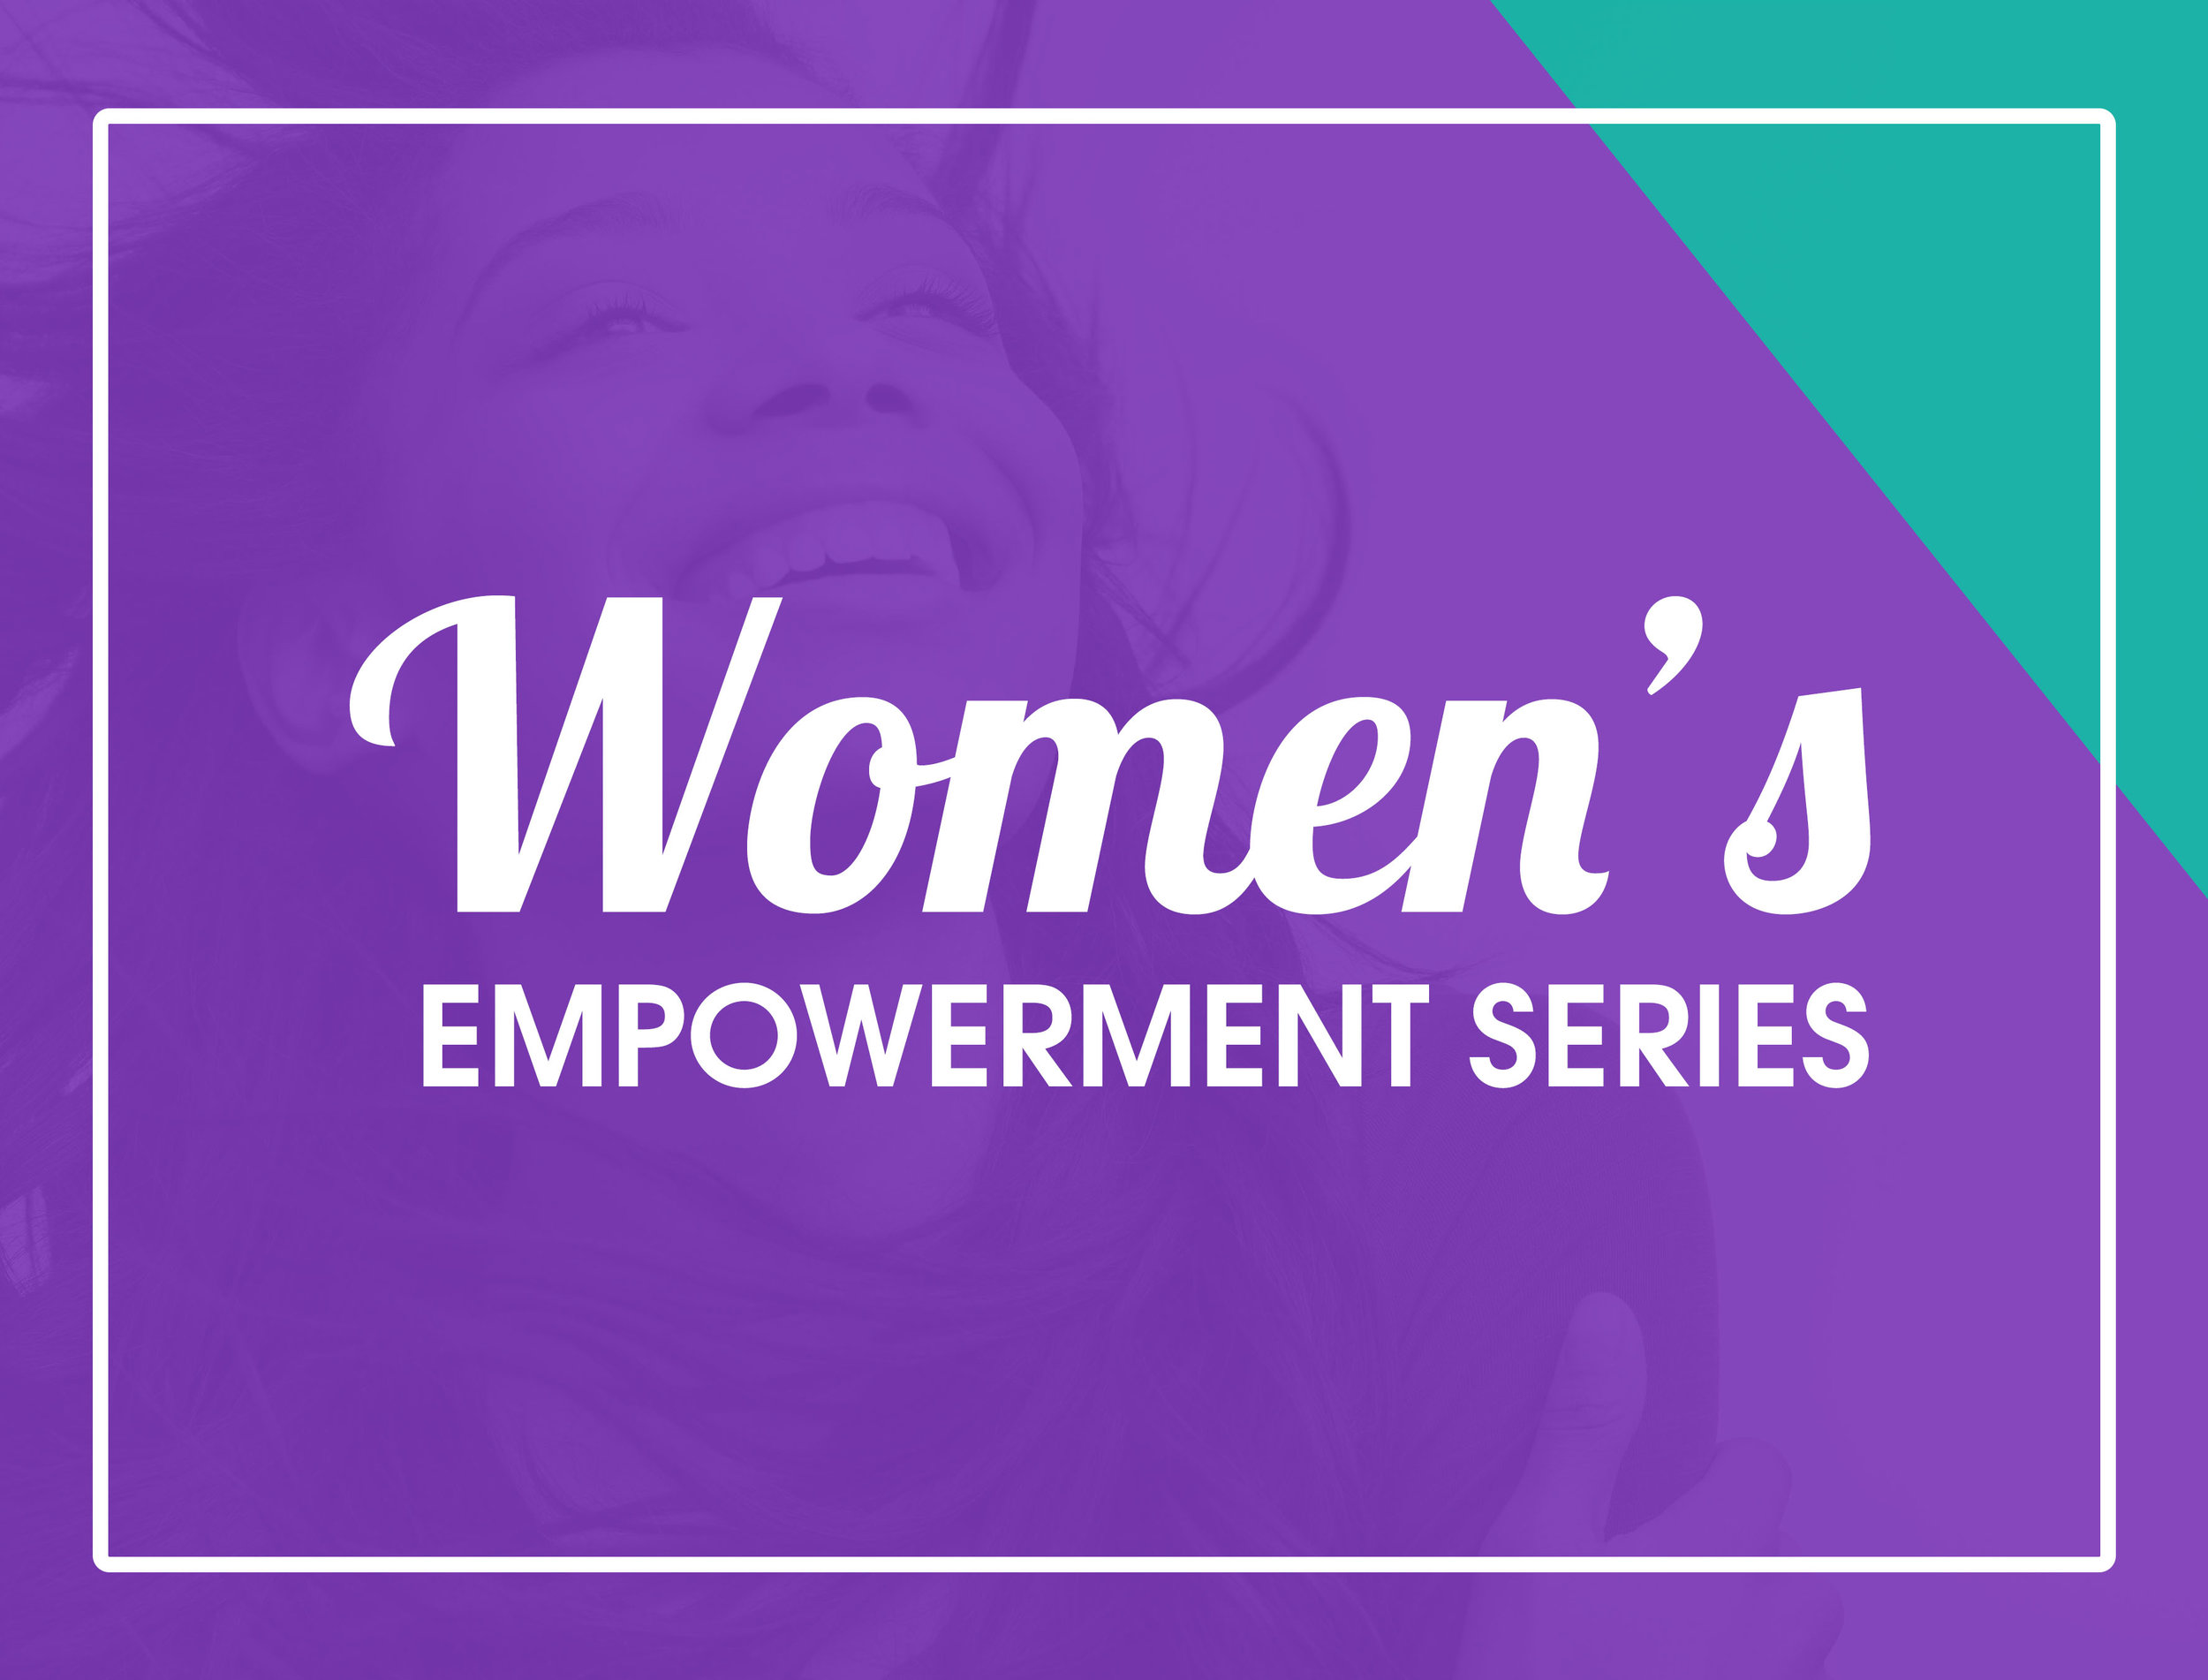 Four series Workshops designed to address the cycles of poverty, while offering real solutions to break the strongholds that have bound women to settle for less than they deserve.